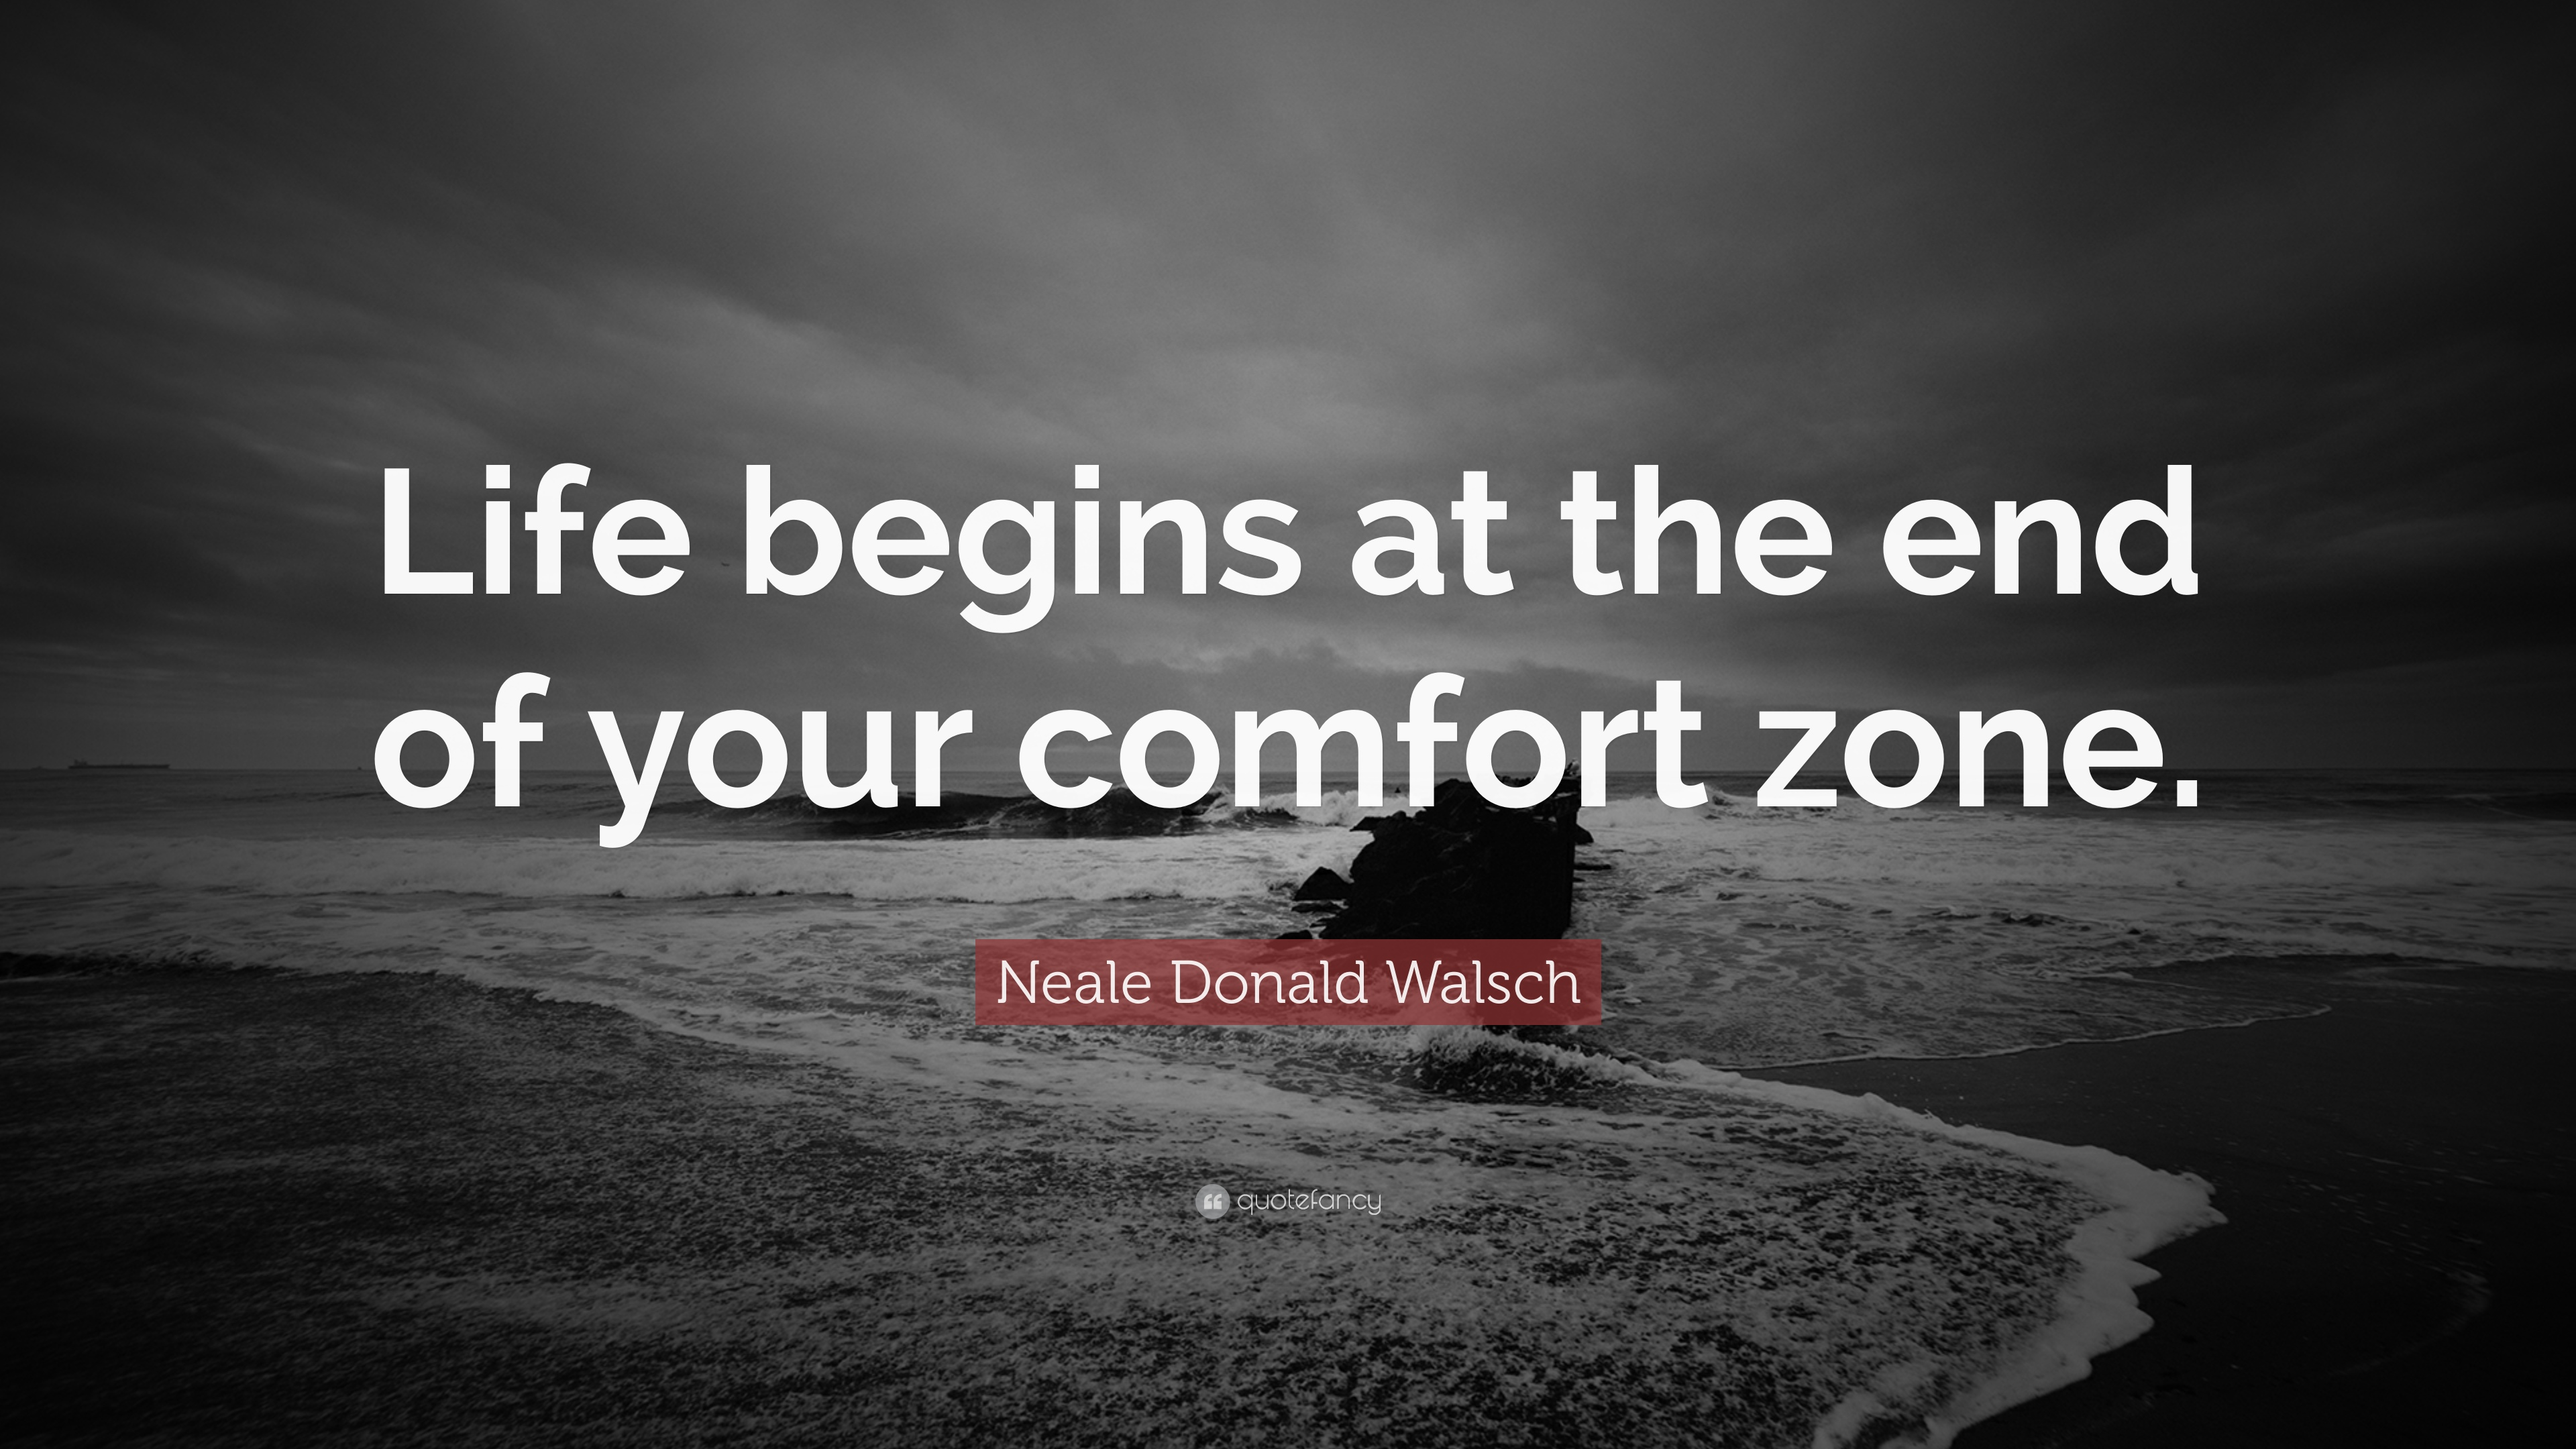 Neale Donald Walsch Quote Life Begins At The End Of Your Comfort Zone